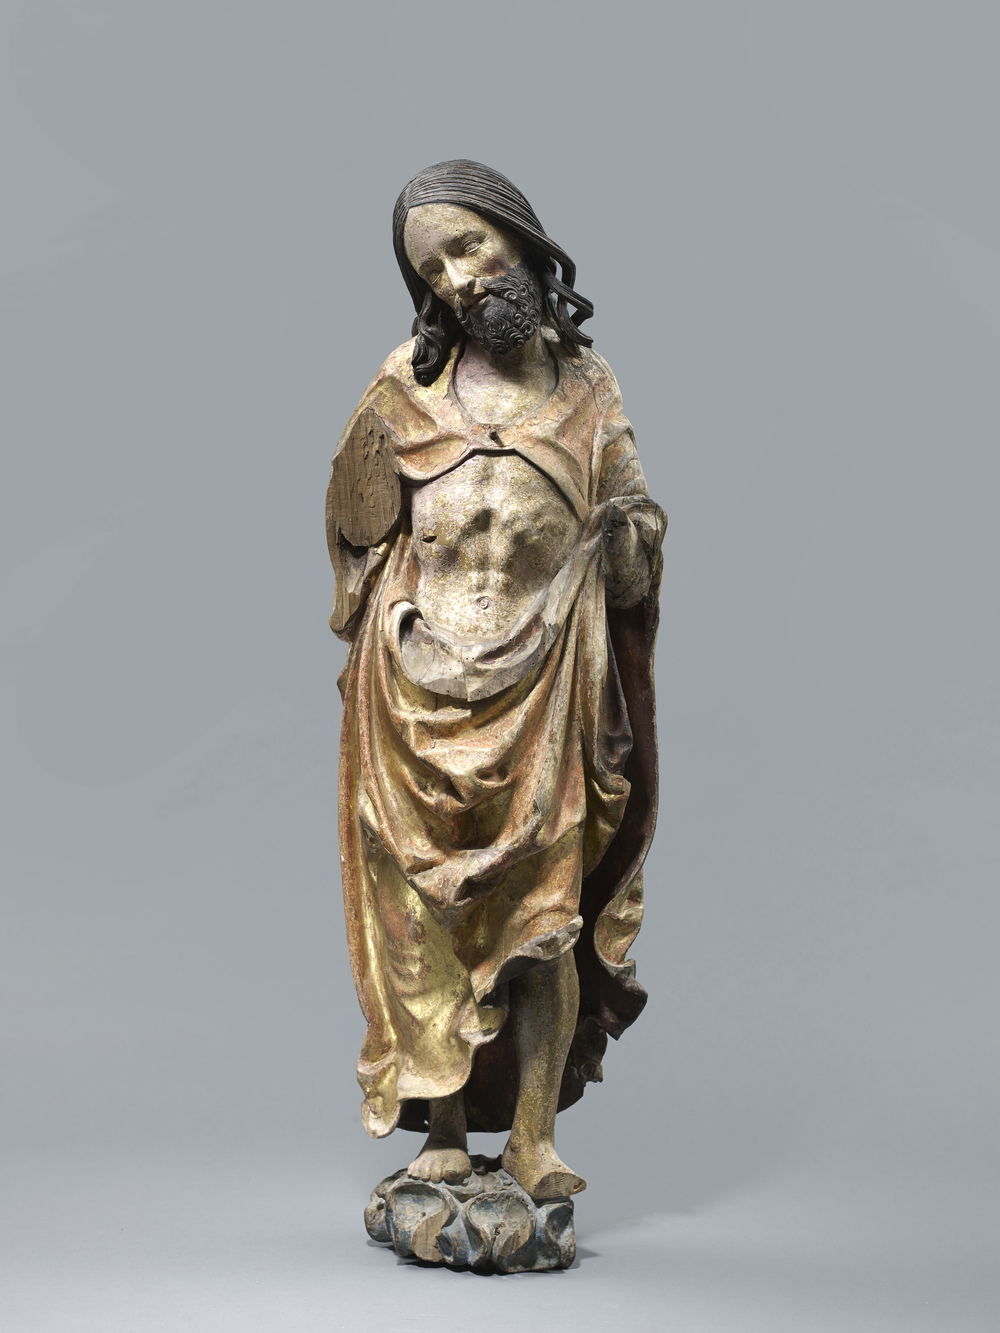 The Risen Christ Lower Bavaria or Austria First quarter 16th century Height 120 cm, limewood with some original polychromy and gilding